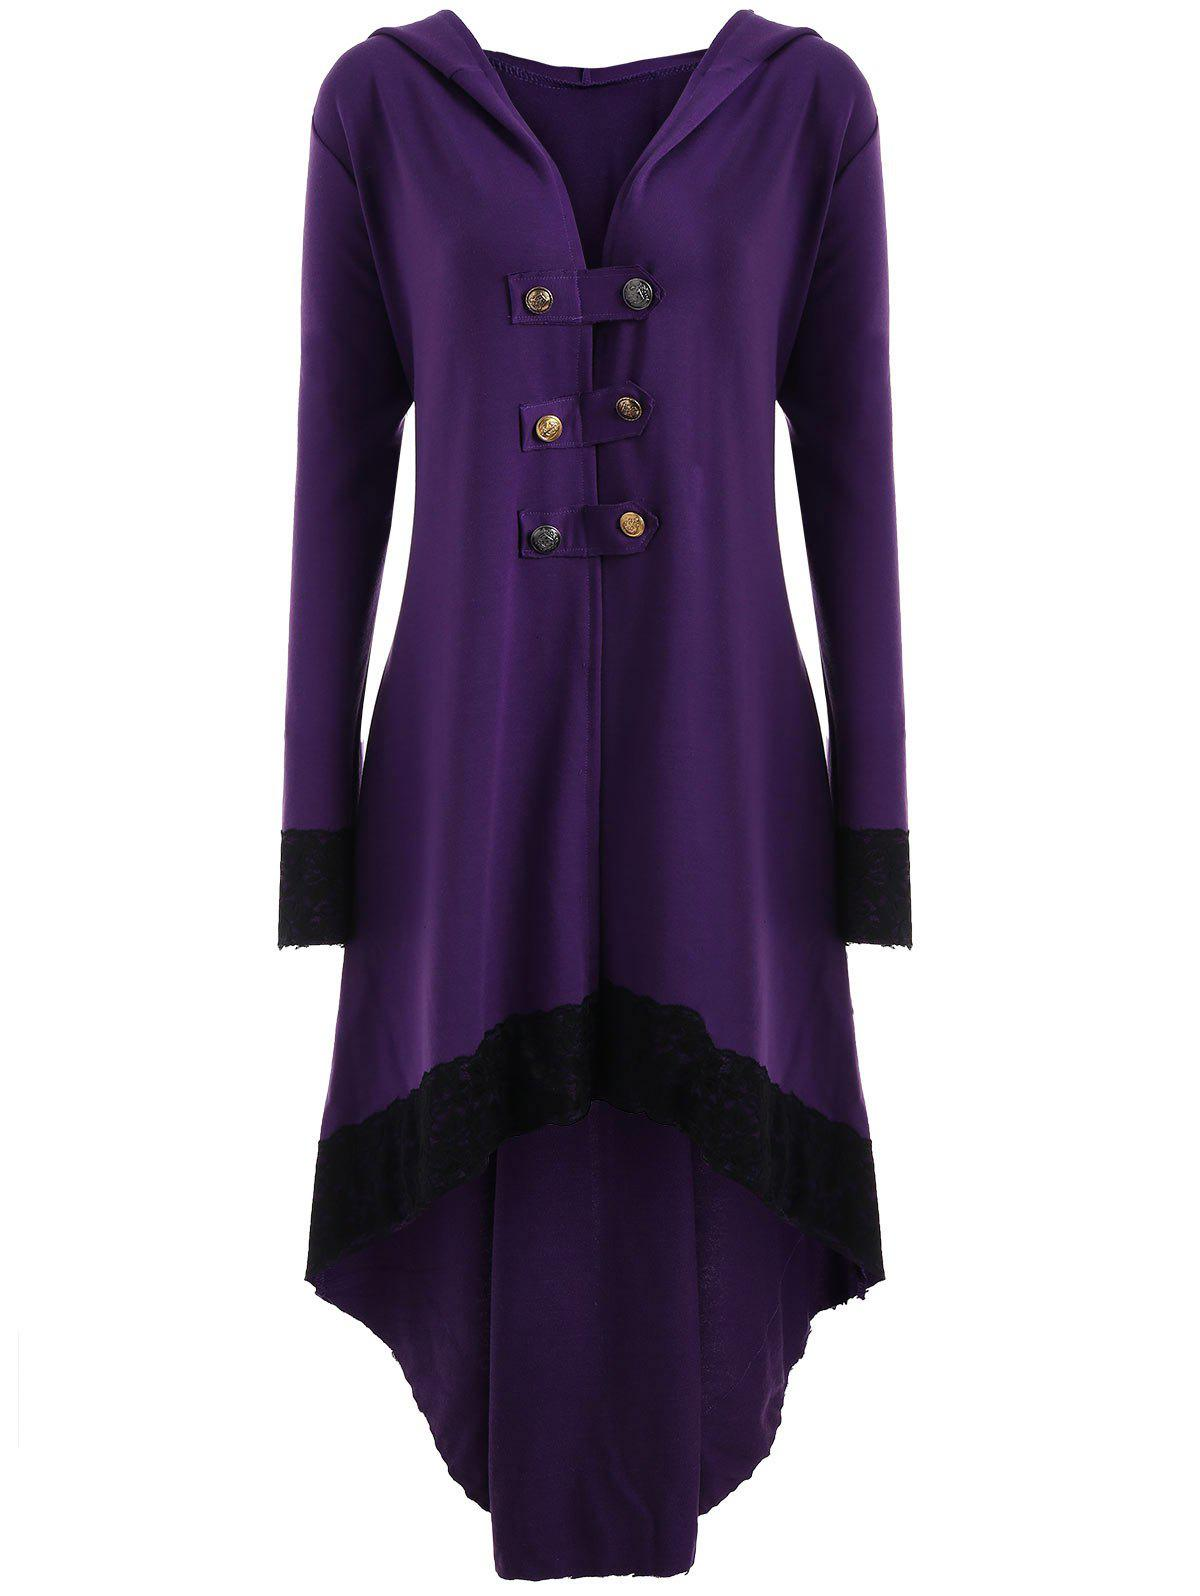 High Low Hooded Plus Size Lace-up CoatWOMEN<br><br>Size: 5XL; Color: PURPLE; Clothes Type: Others; Material: Polyester,Spandex; Type: Asymmetric Length; Shirt Length: Long; Sleeve Length: Full; Collar: Hooded; Pattern Type: Solid; Style: Fashion; Season: Fall,Spring; Weight: 0.6200kg; Package Contents: 1 x Coat;